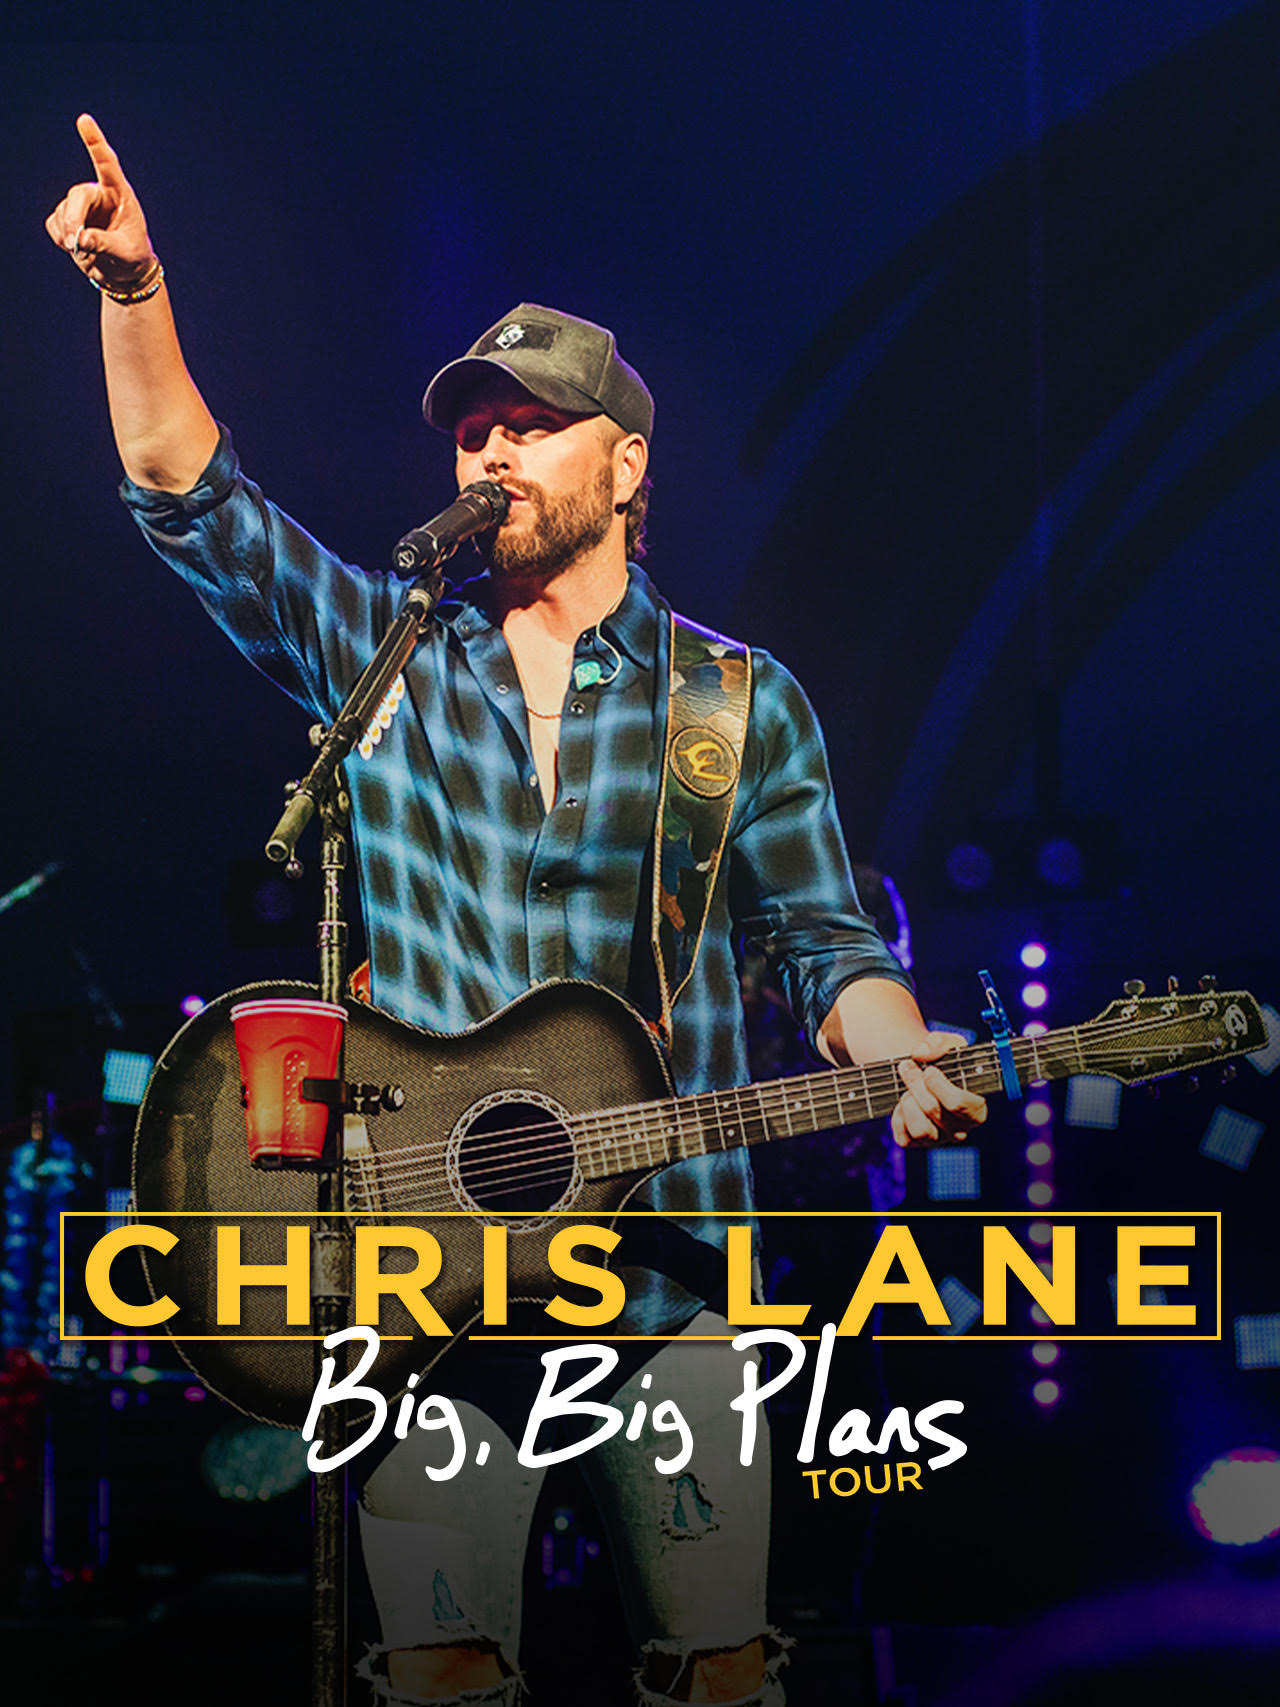 The Big, Big Plans Tour